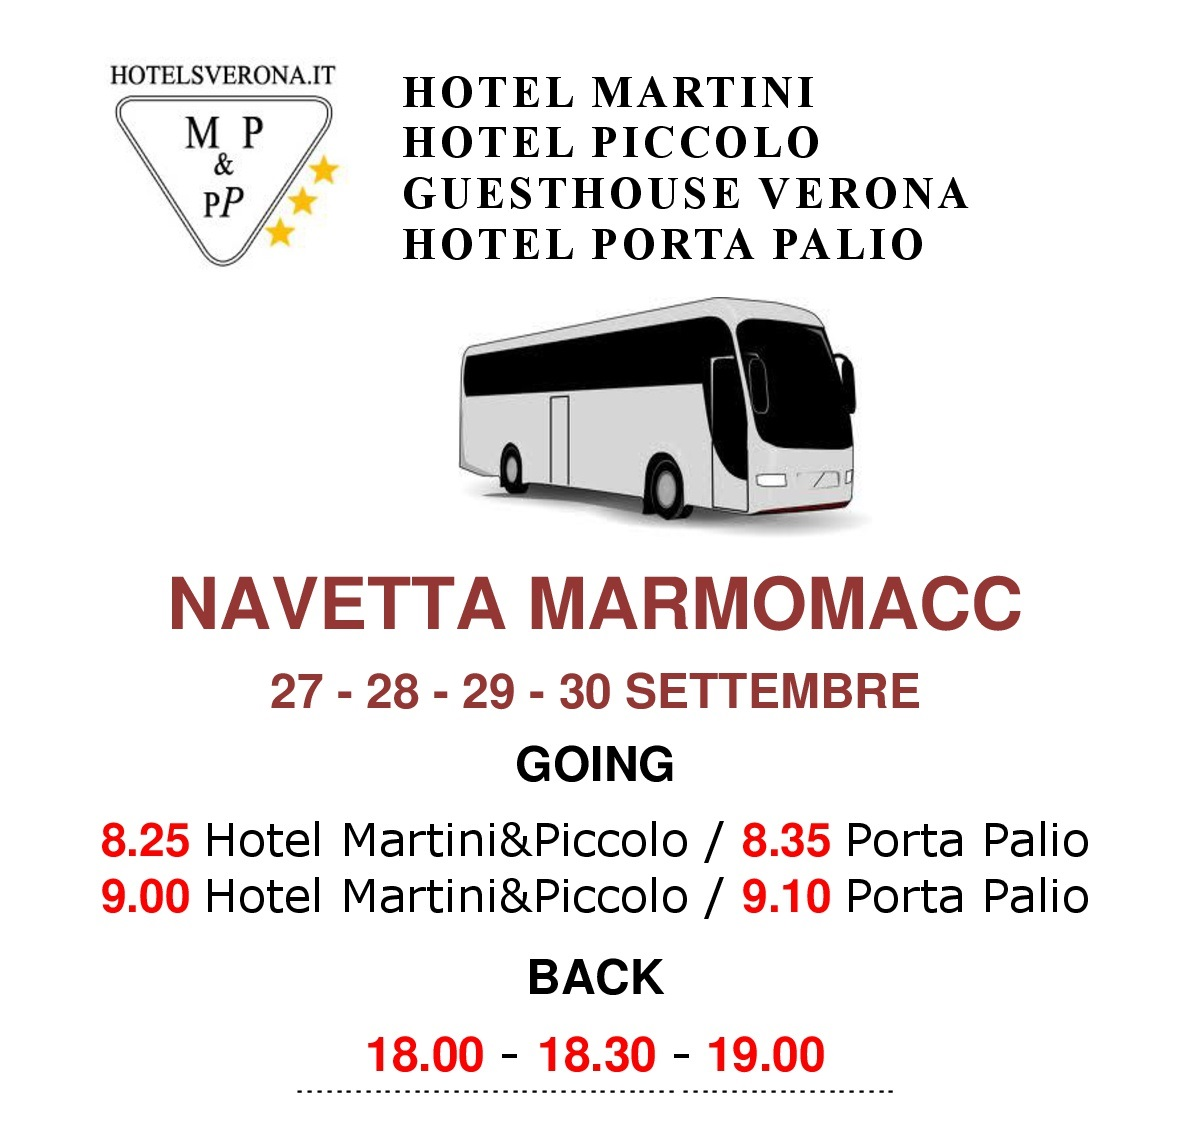 MARMOMACC: free shuttle bus for our guests!